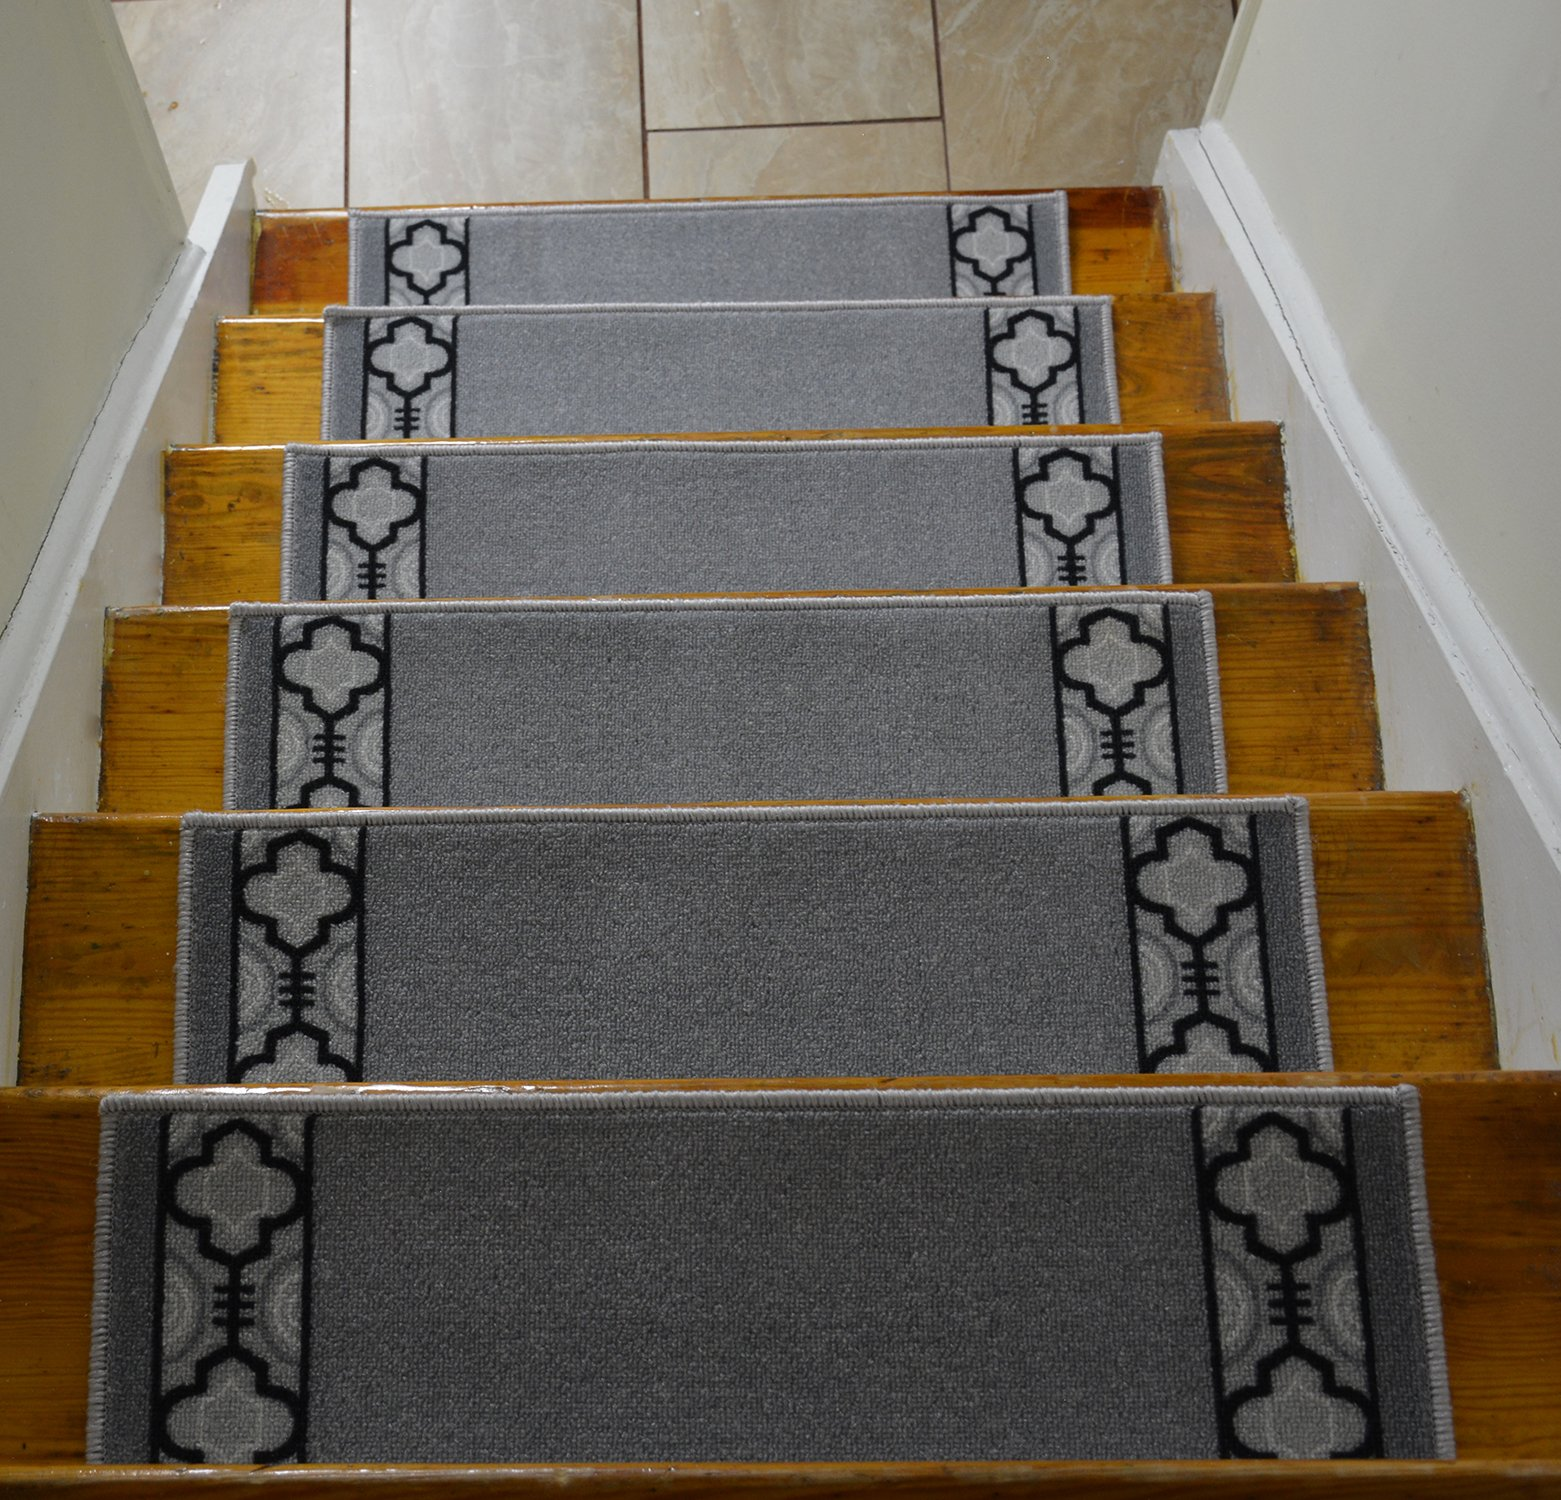 Stair Treads Skid Slip Resistant Backing Indoor Carpet Stair Treads Trellis Border Design 8 ½ inch x 26 ¼ inch (Set of 13, Grey Black) by RugStylesOnline